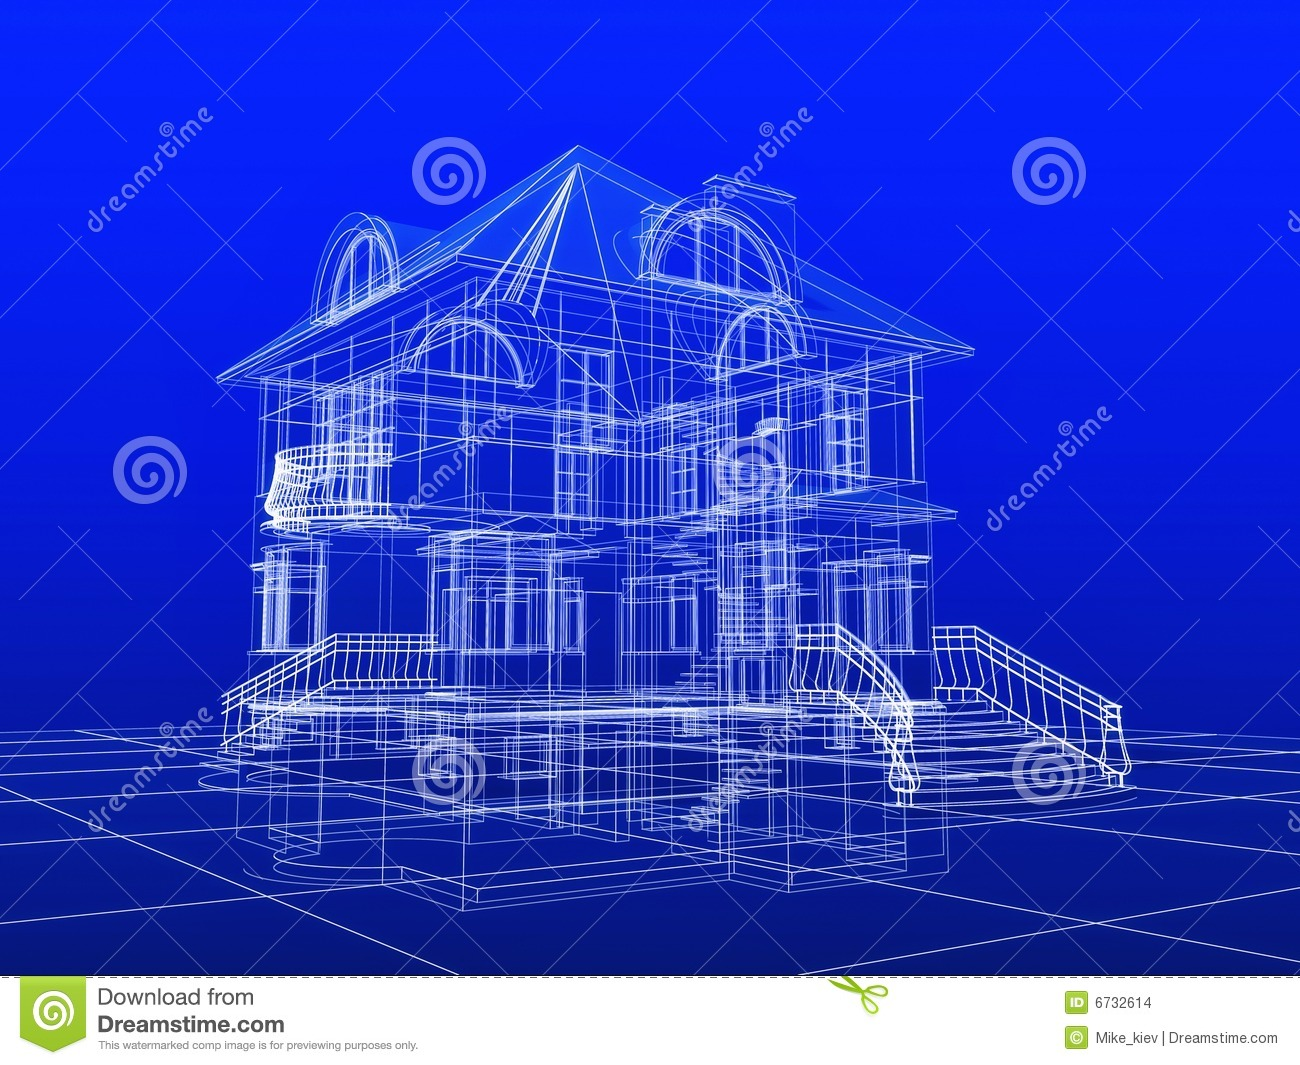 blueprints homes blueprints for new homes zionstar find the best images blueprint stock illustrations blueprints for - Blueprints For Houses